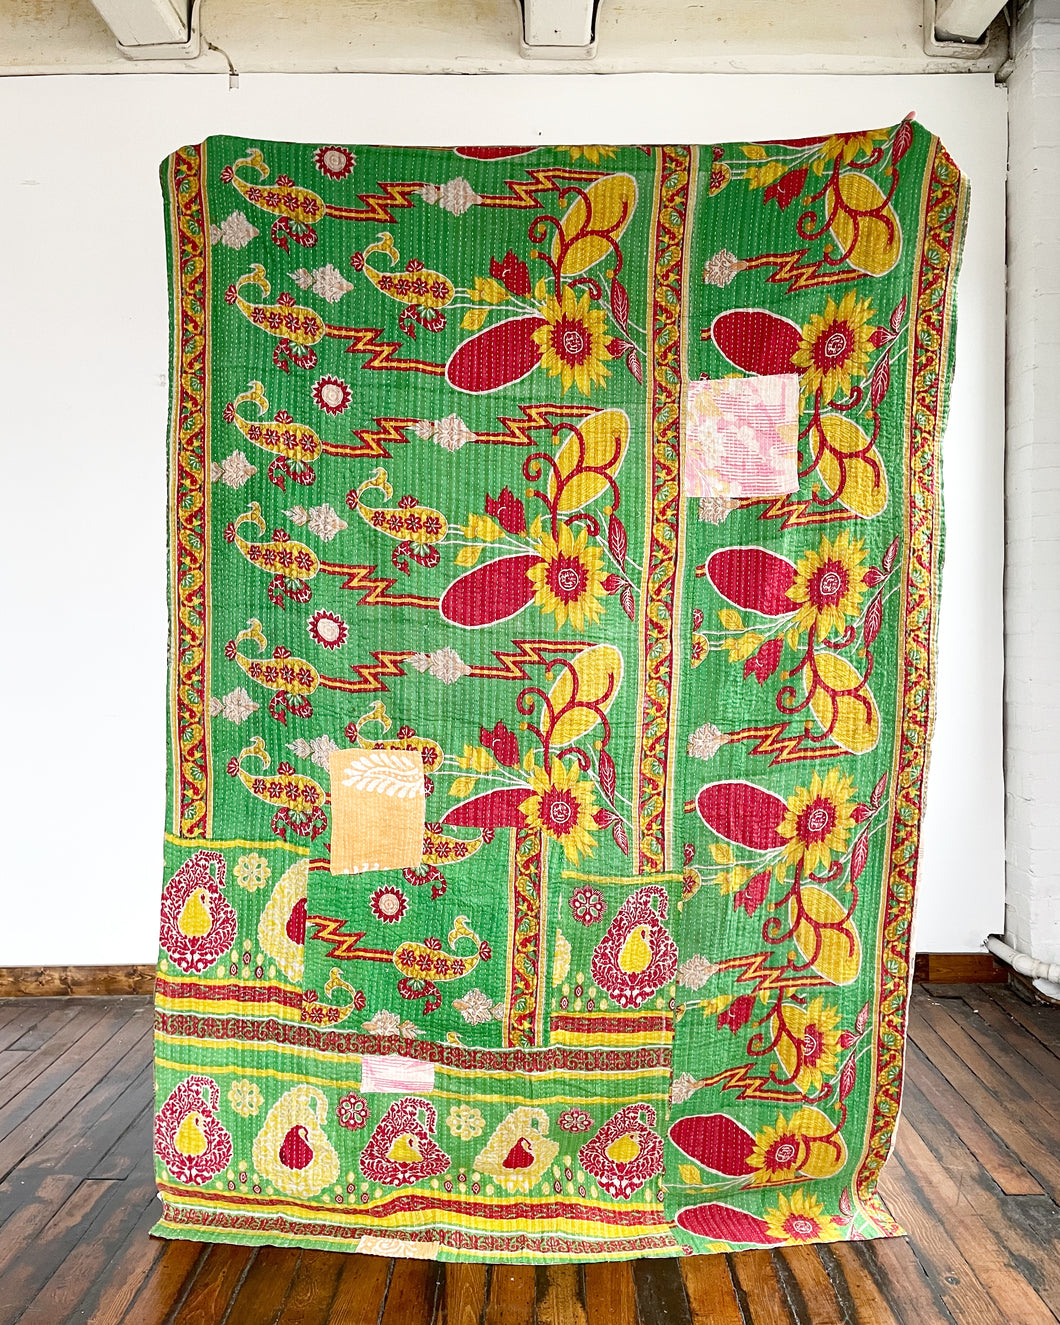 THE VERONICA VINTAGE KANTHA